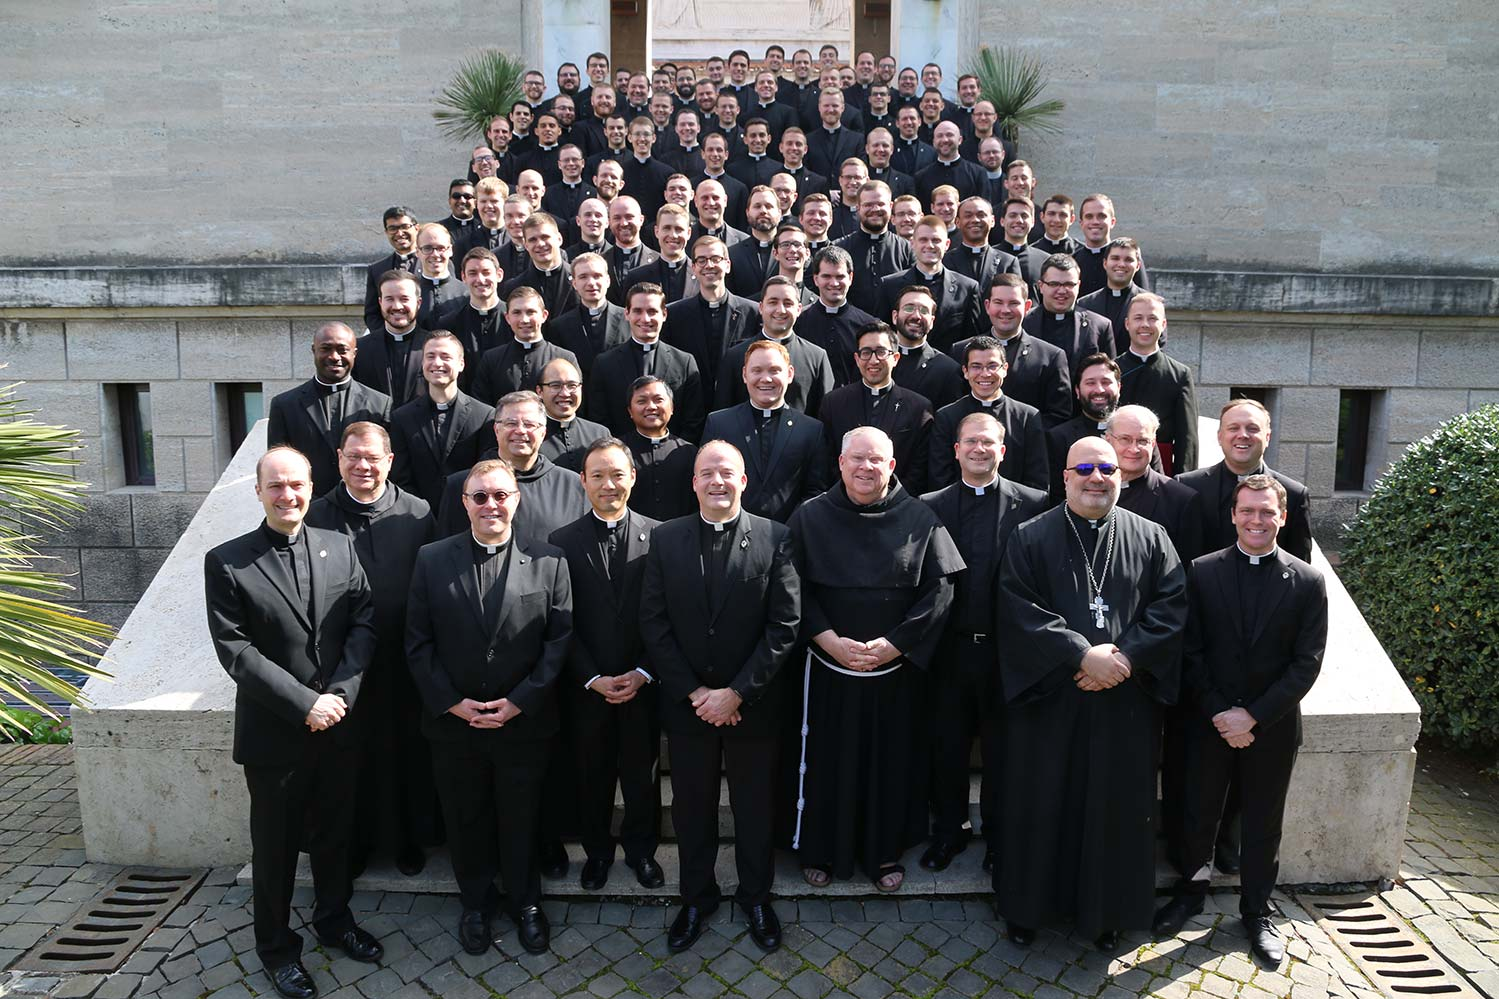 The staff and 92 seminarians at the Pontifical North American College in Rome pose for a photograph March 15 on the steps leading to the seminary chapel. Catholic News Agency reports the seminarians are being sent back to the United States. (Courtesy of the Pontifical North American College/CNS)